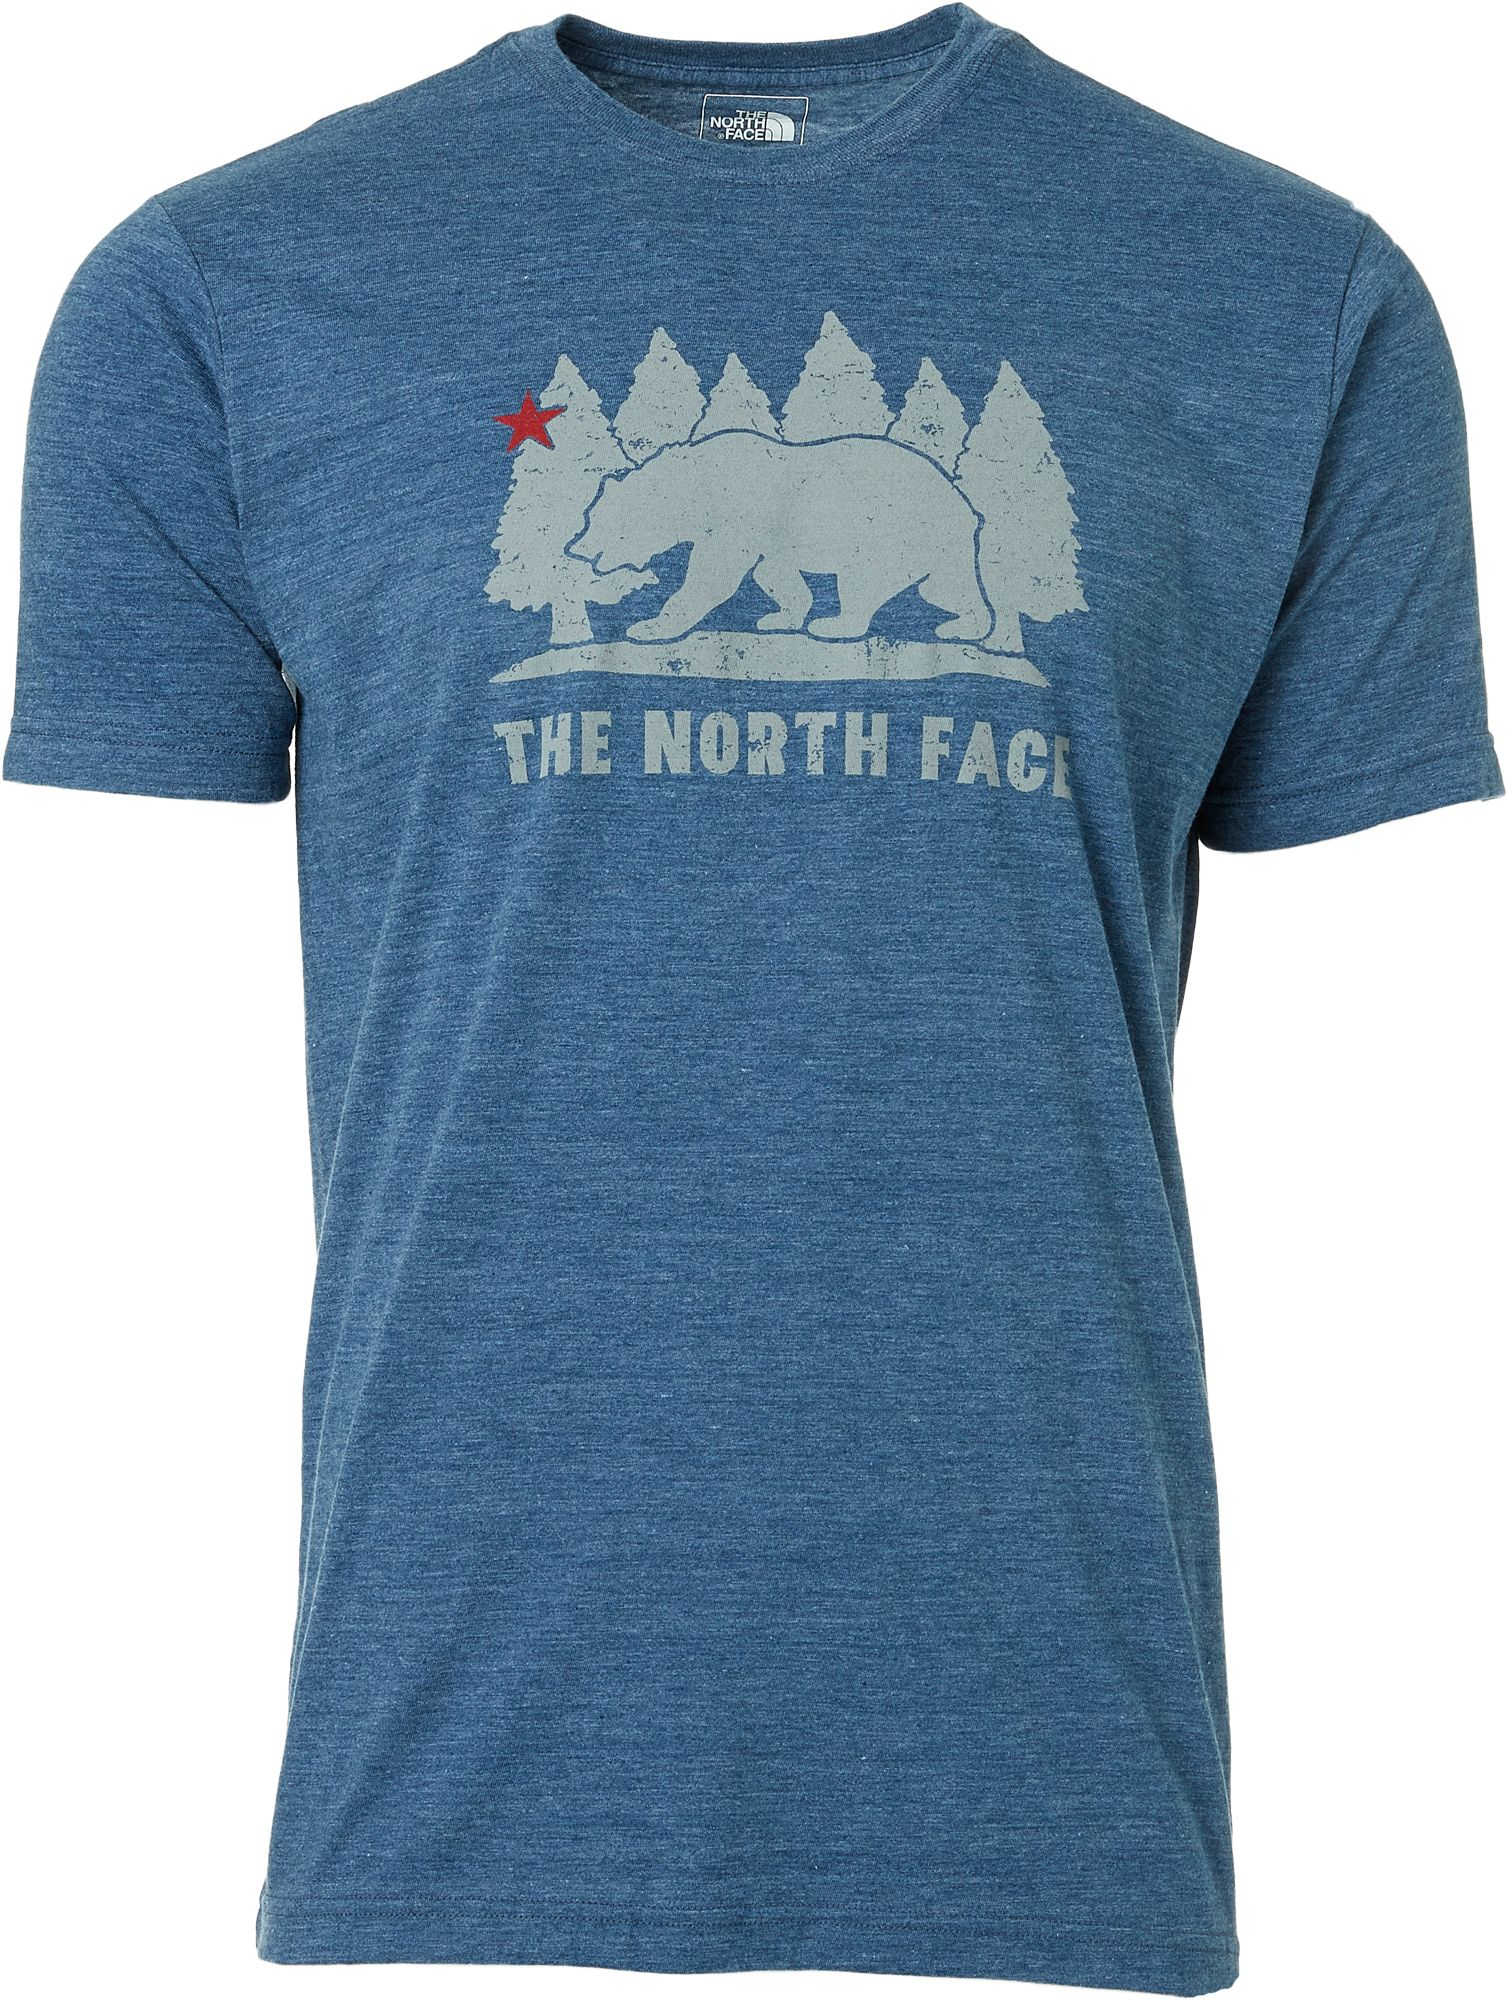 north face tshirt